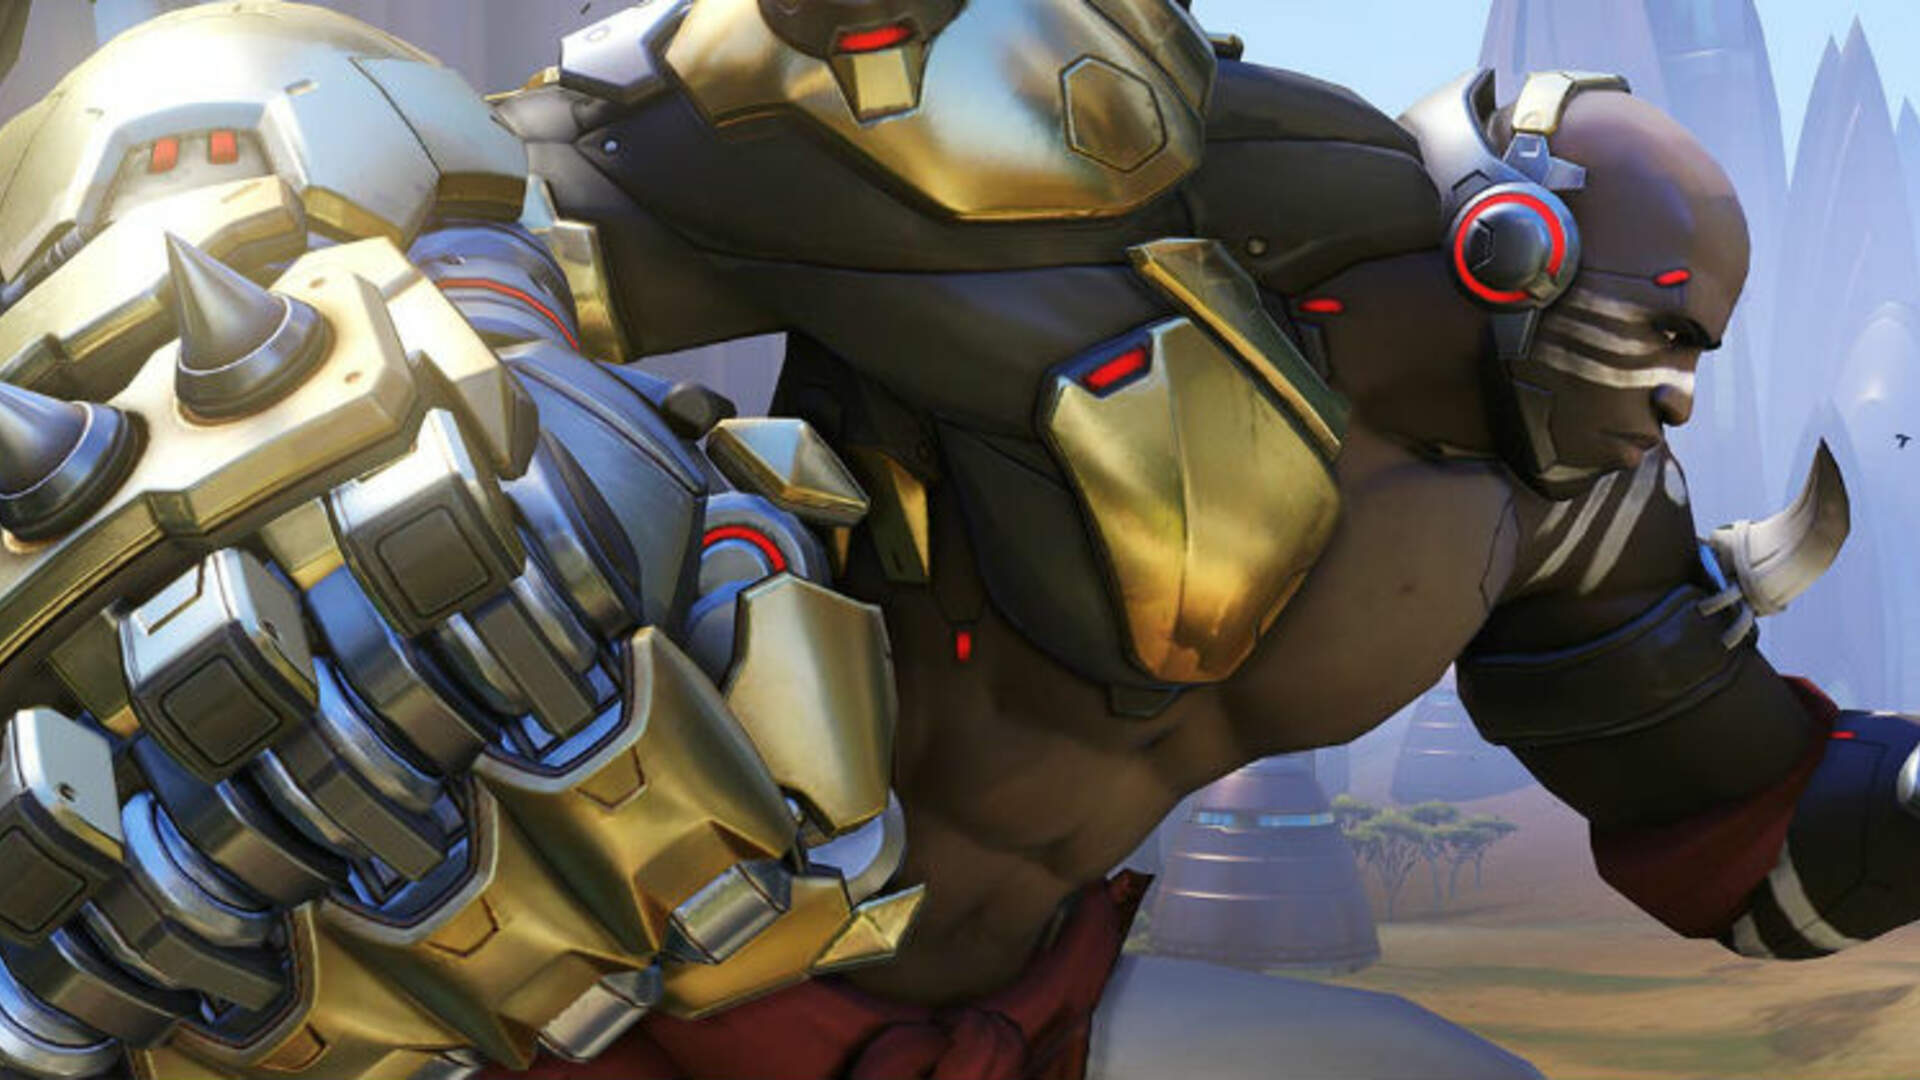 Doomfist Guide - How to Play Doomfist in Overwatch, Doomfist Legendary Skins, Is Doomfist OP?